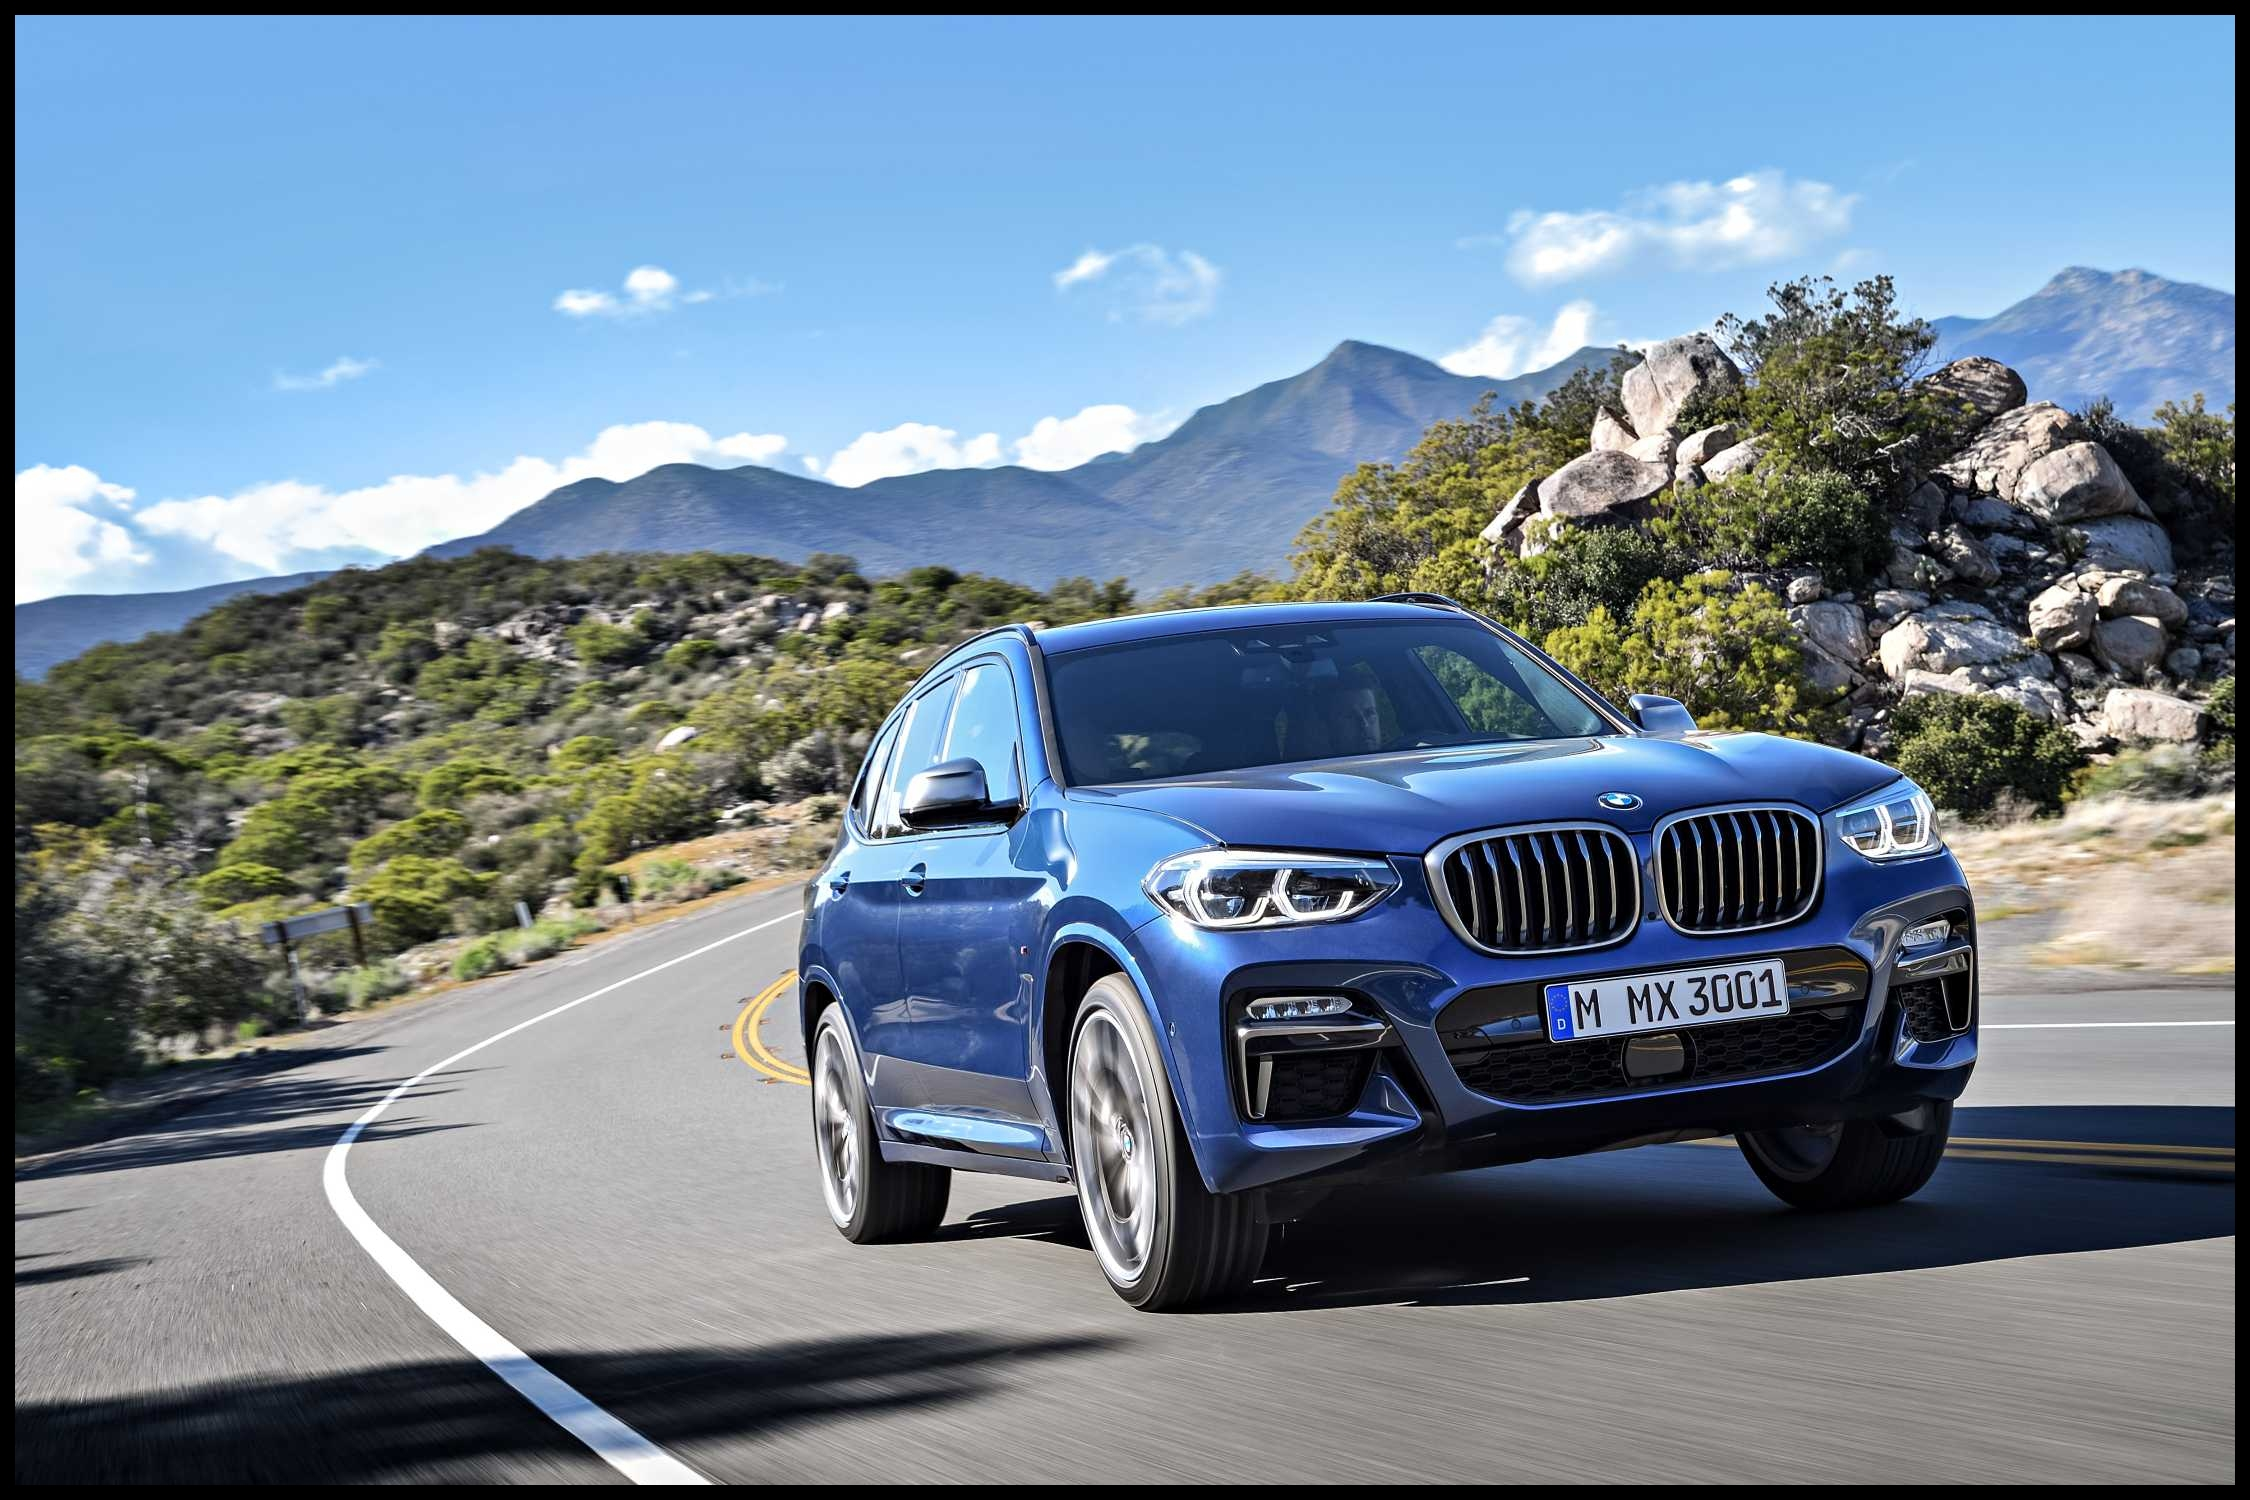 P the new bmw x3 xdrive m40i exterior color phytonic blue metallic upholstery leder vernasca cognac 06 2250px